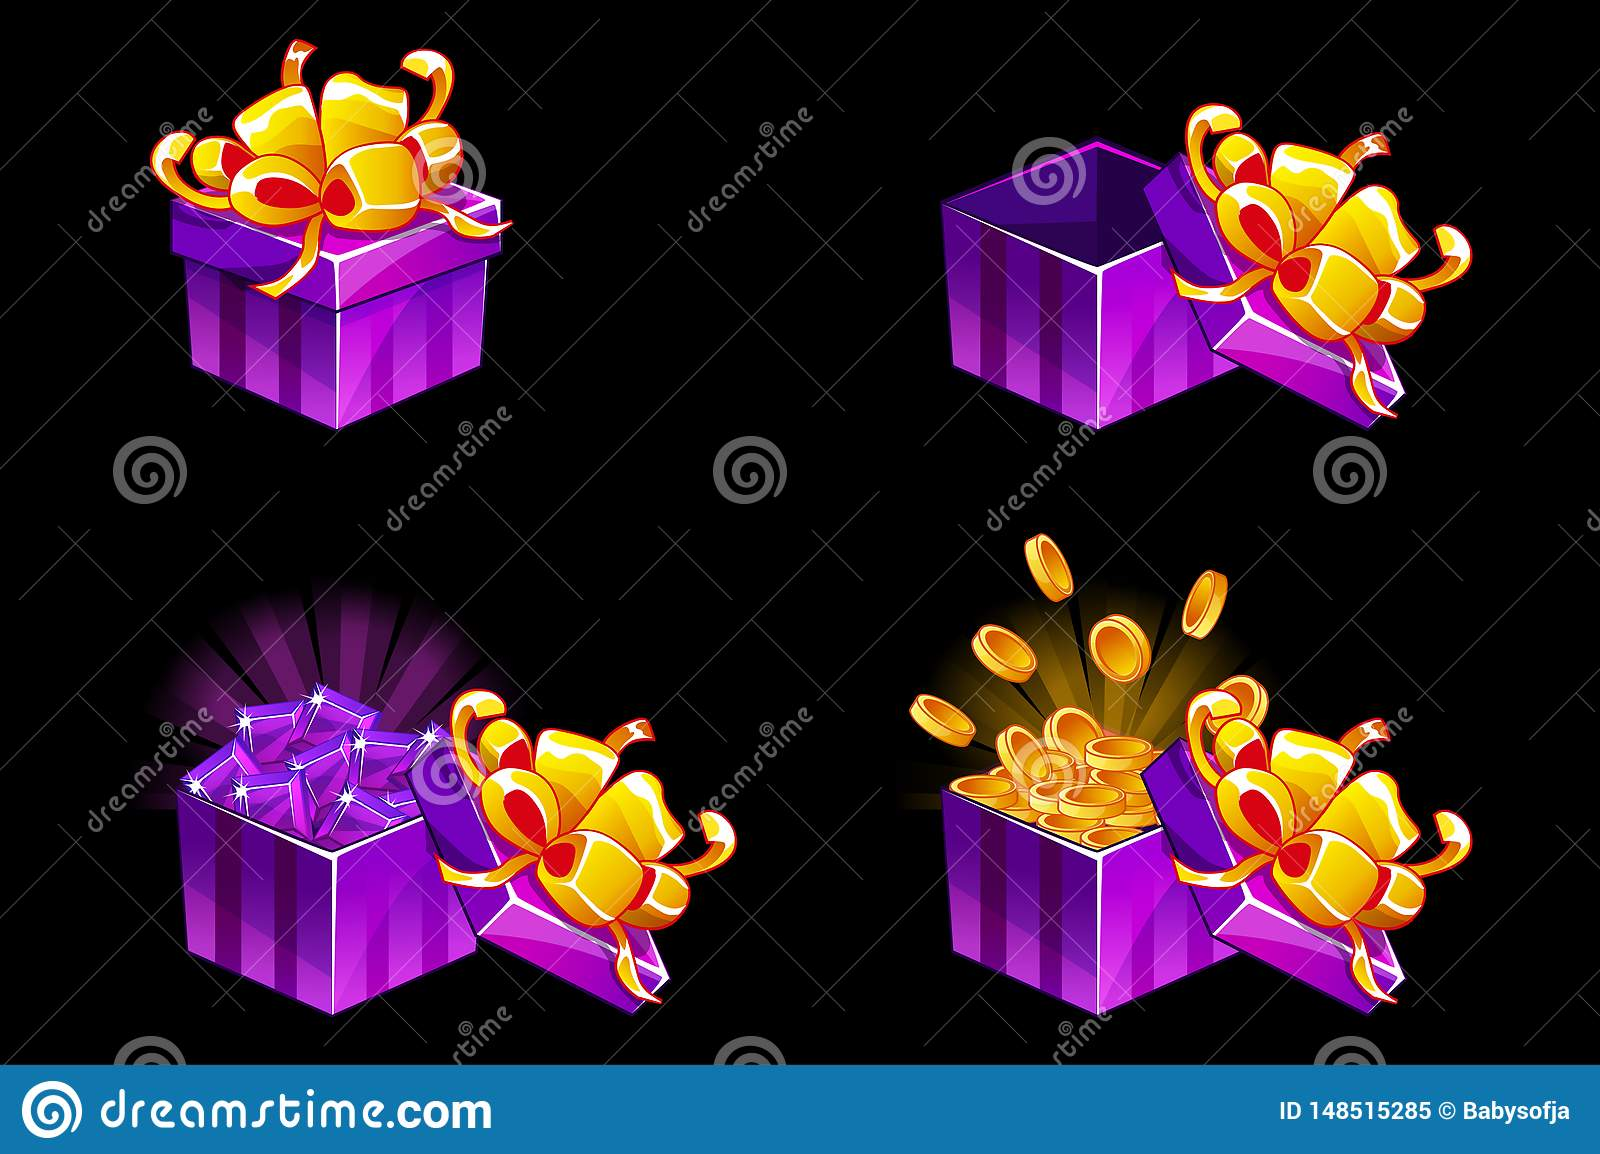 Gift box open and closed. Cartoon isometric Gift with coins and gems, vector bonus icons for UI game resources.